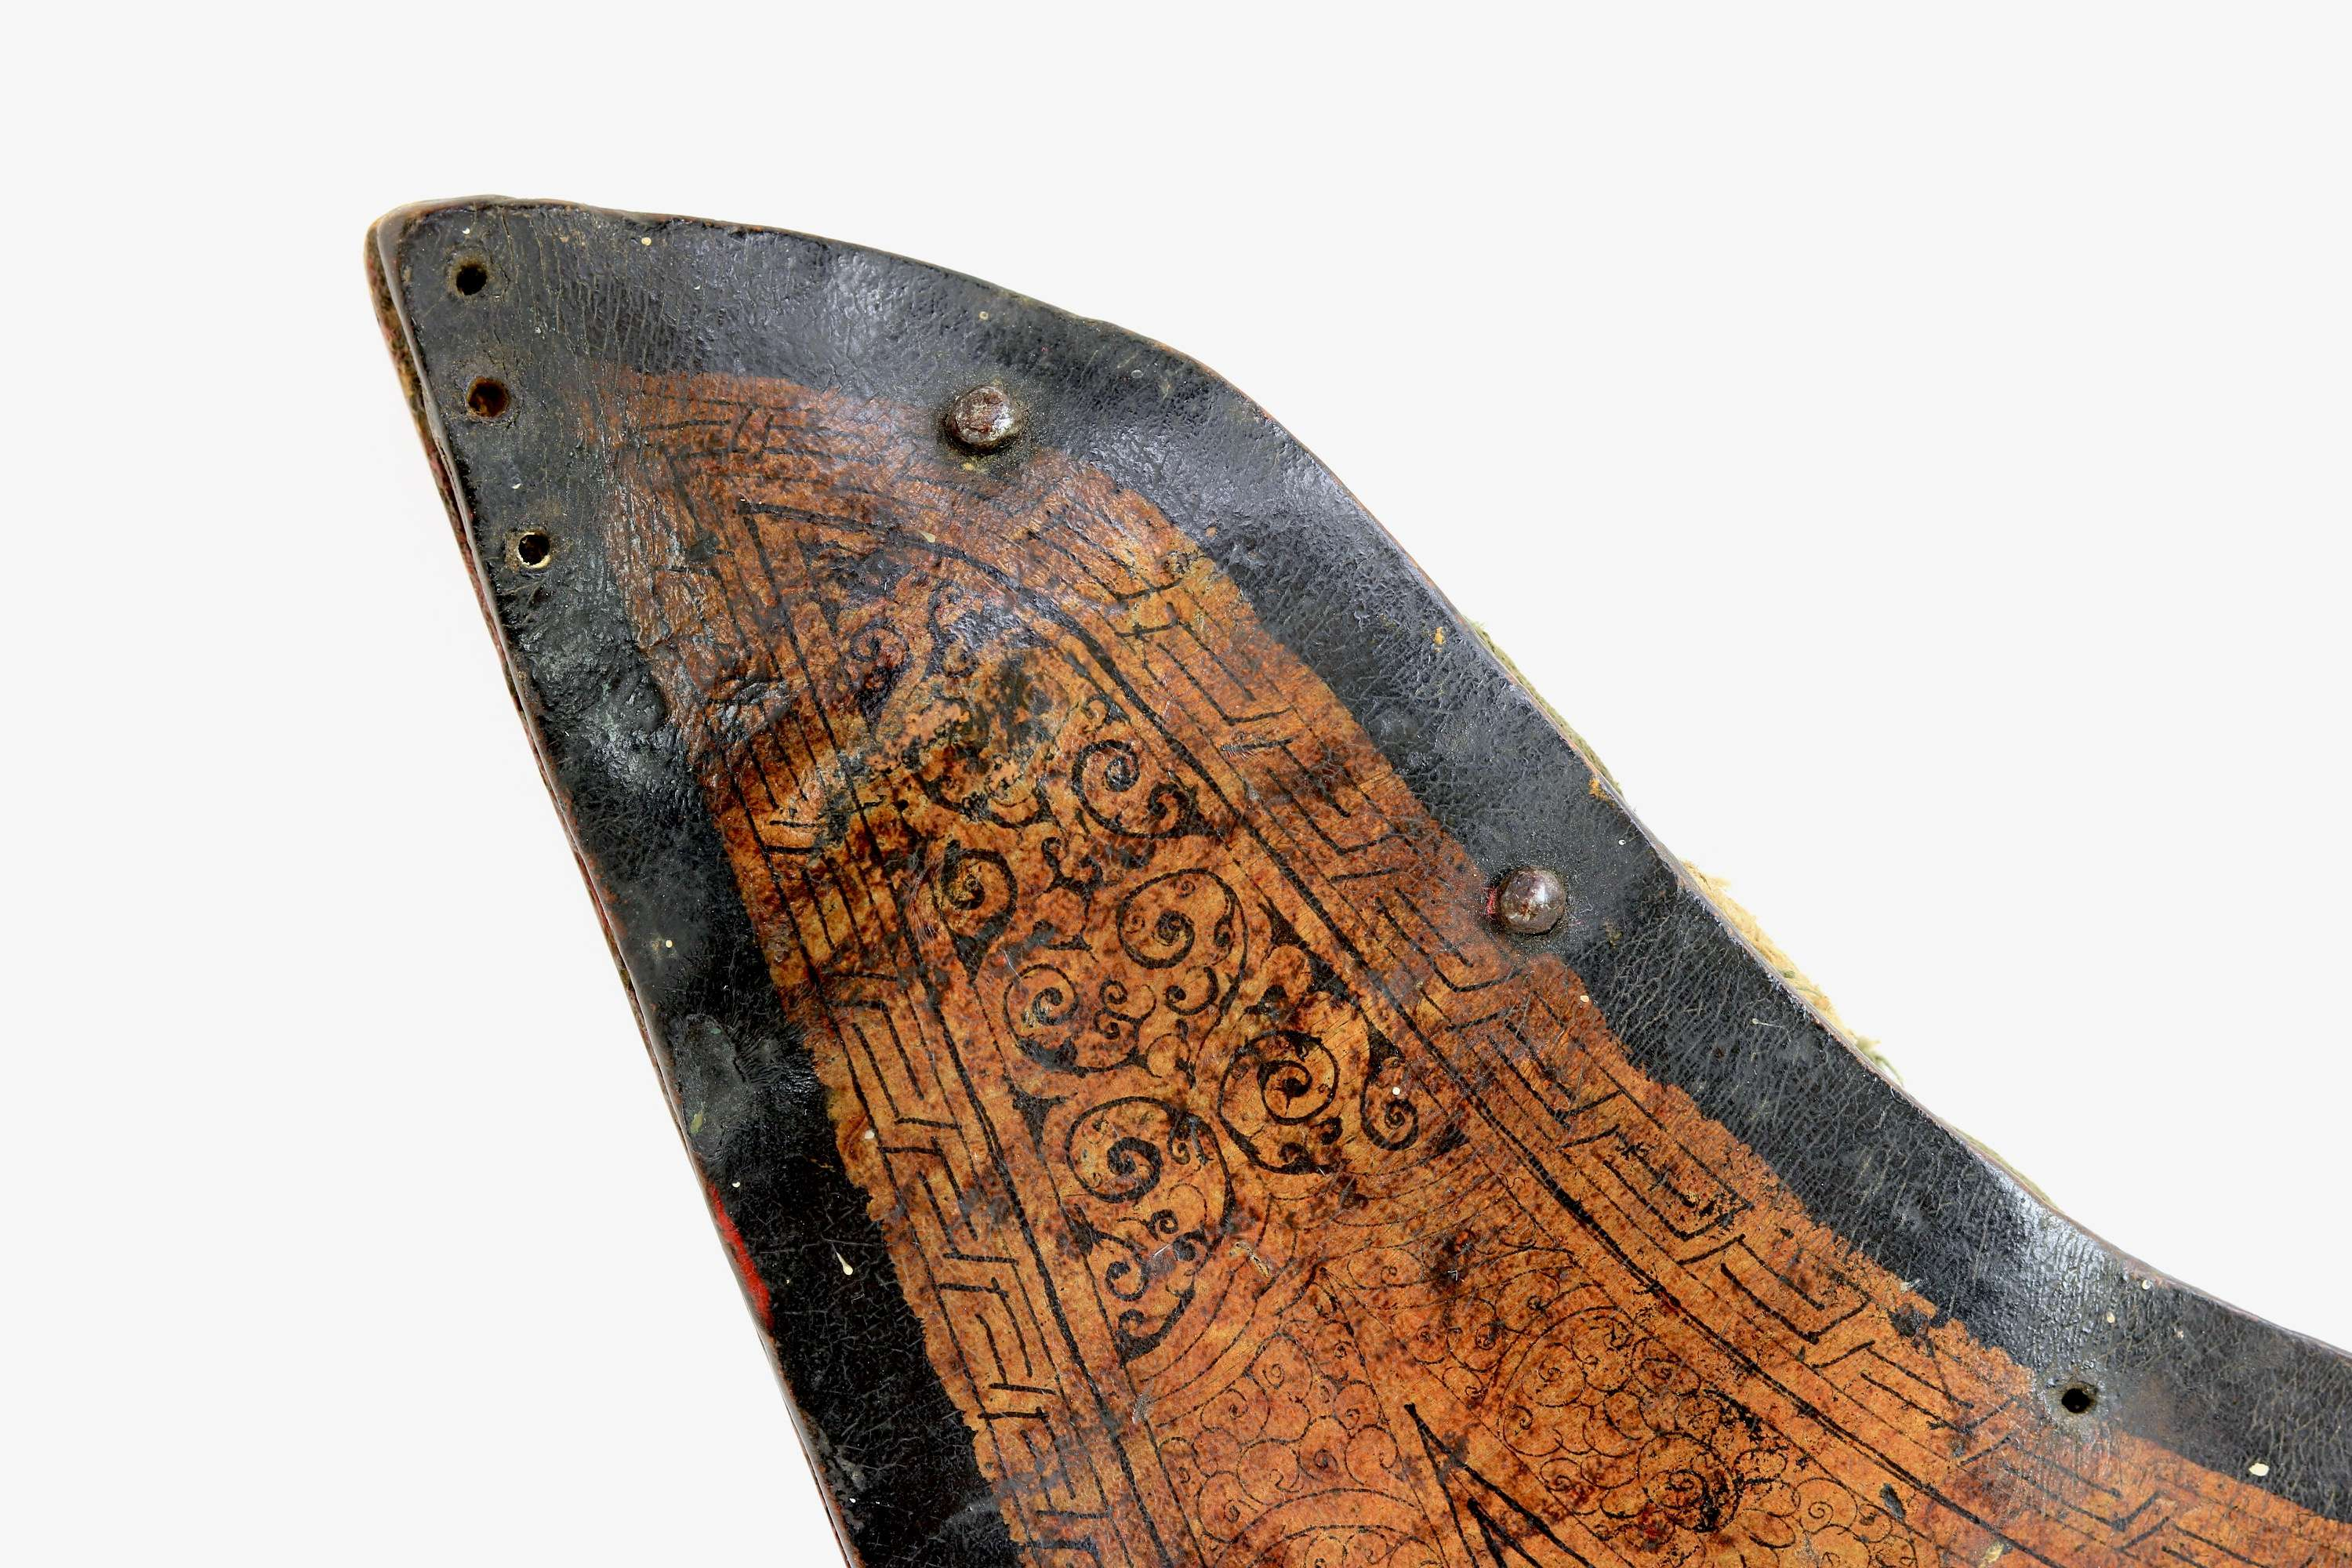 Antique Tibetan or Mongolian open quiver 15th-17th century